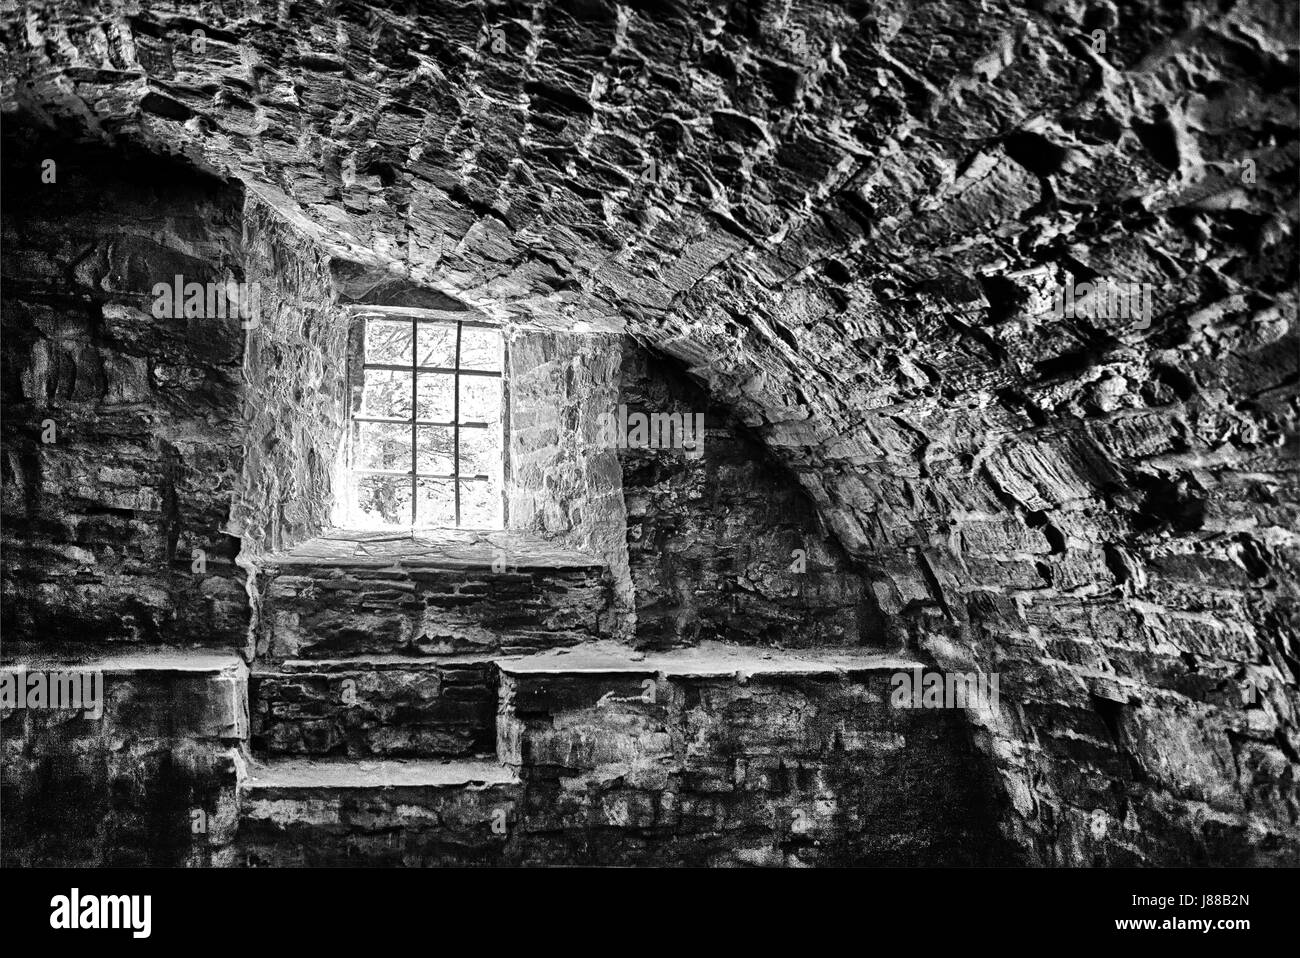 A cellar of an old castle, Germany, Europe - Stock Image